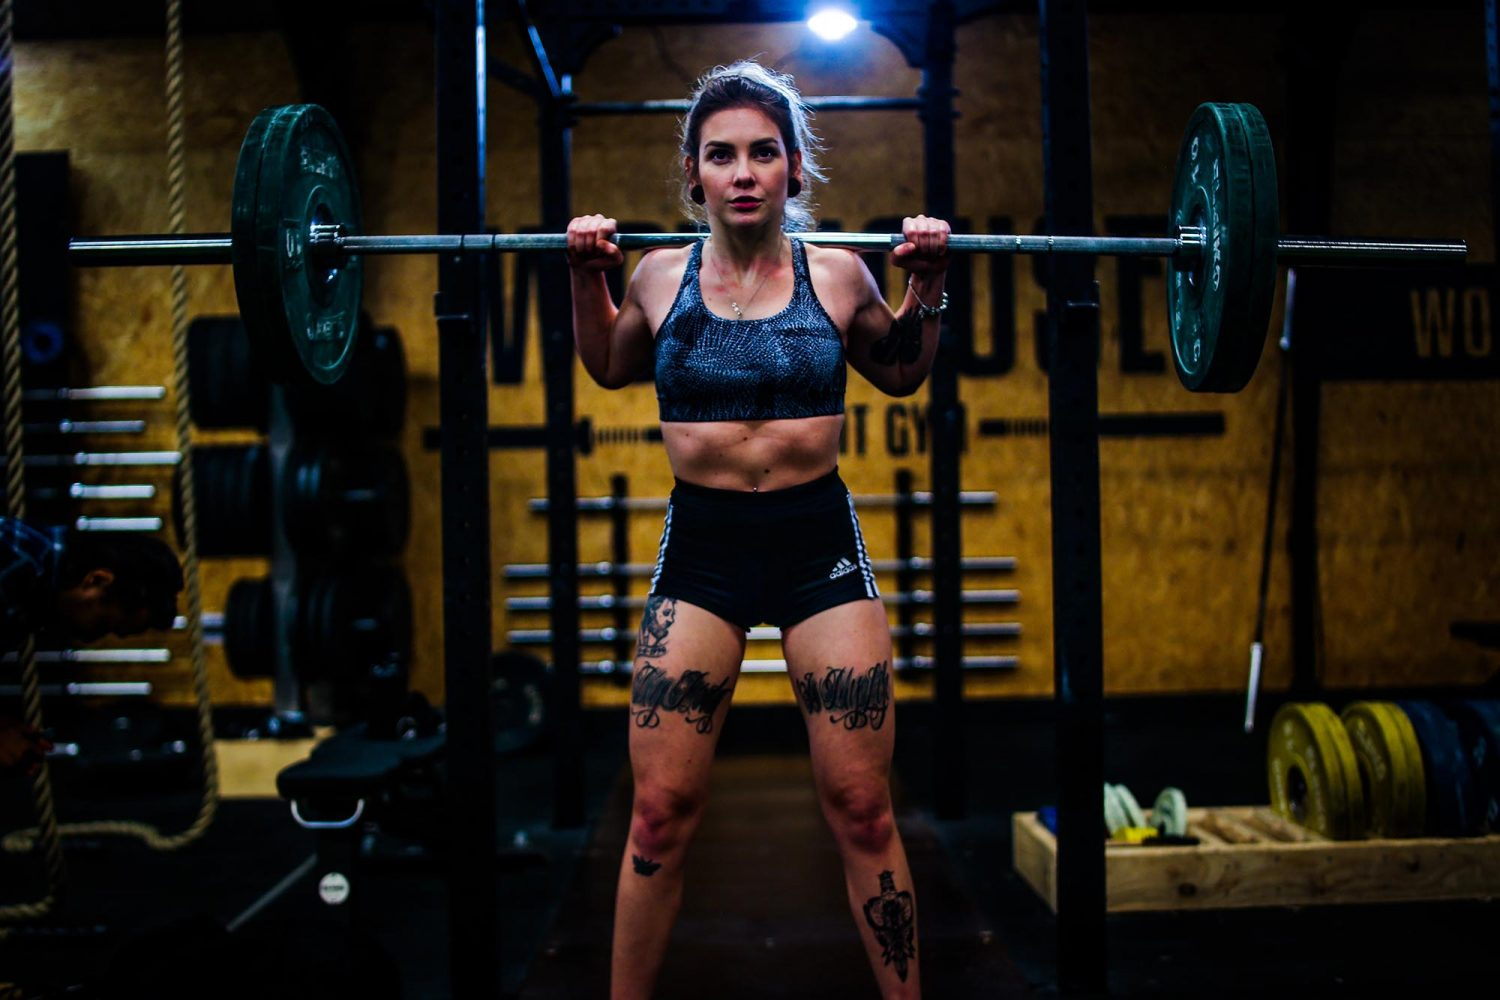 Woman with tattoos preparing to squat in gym